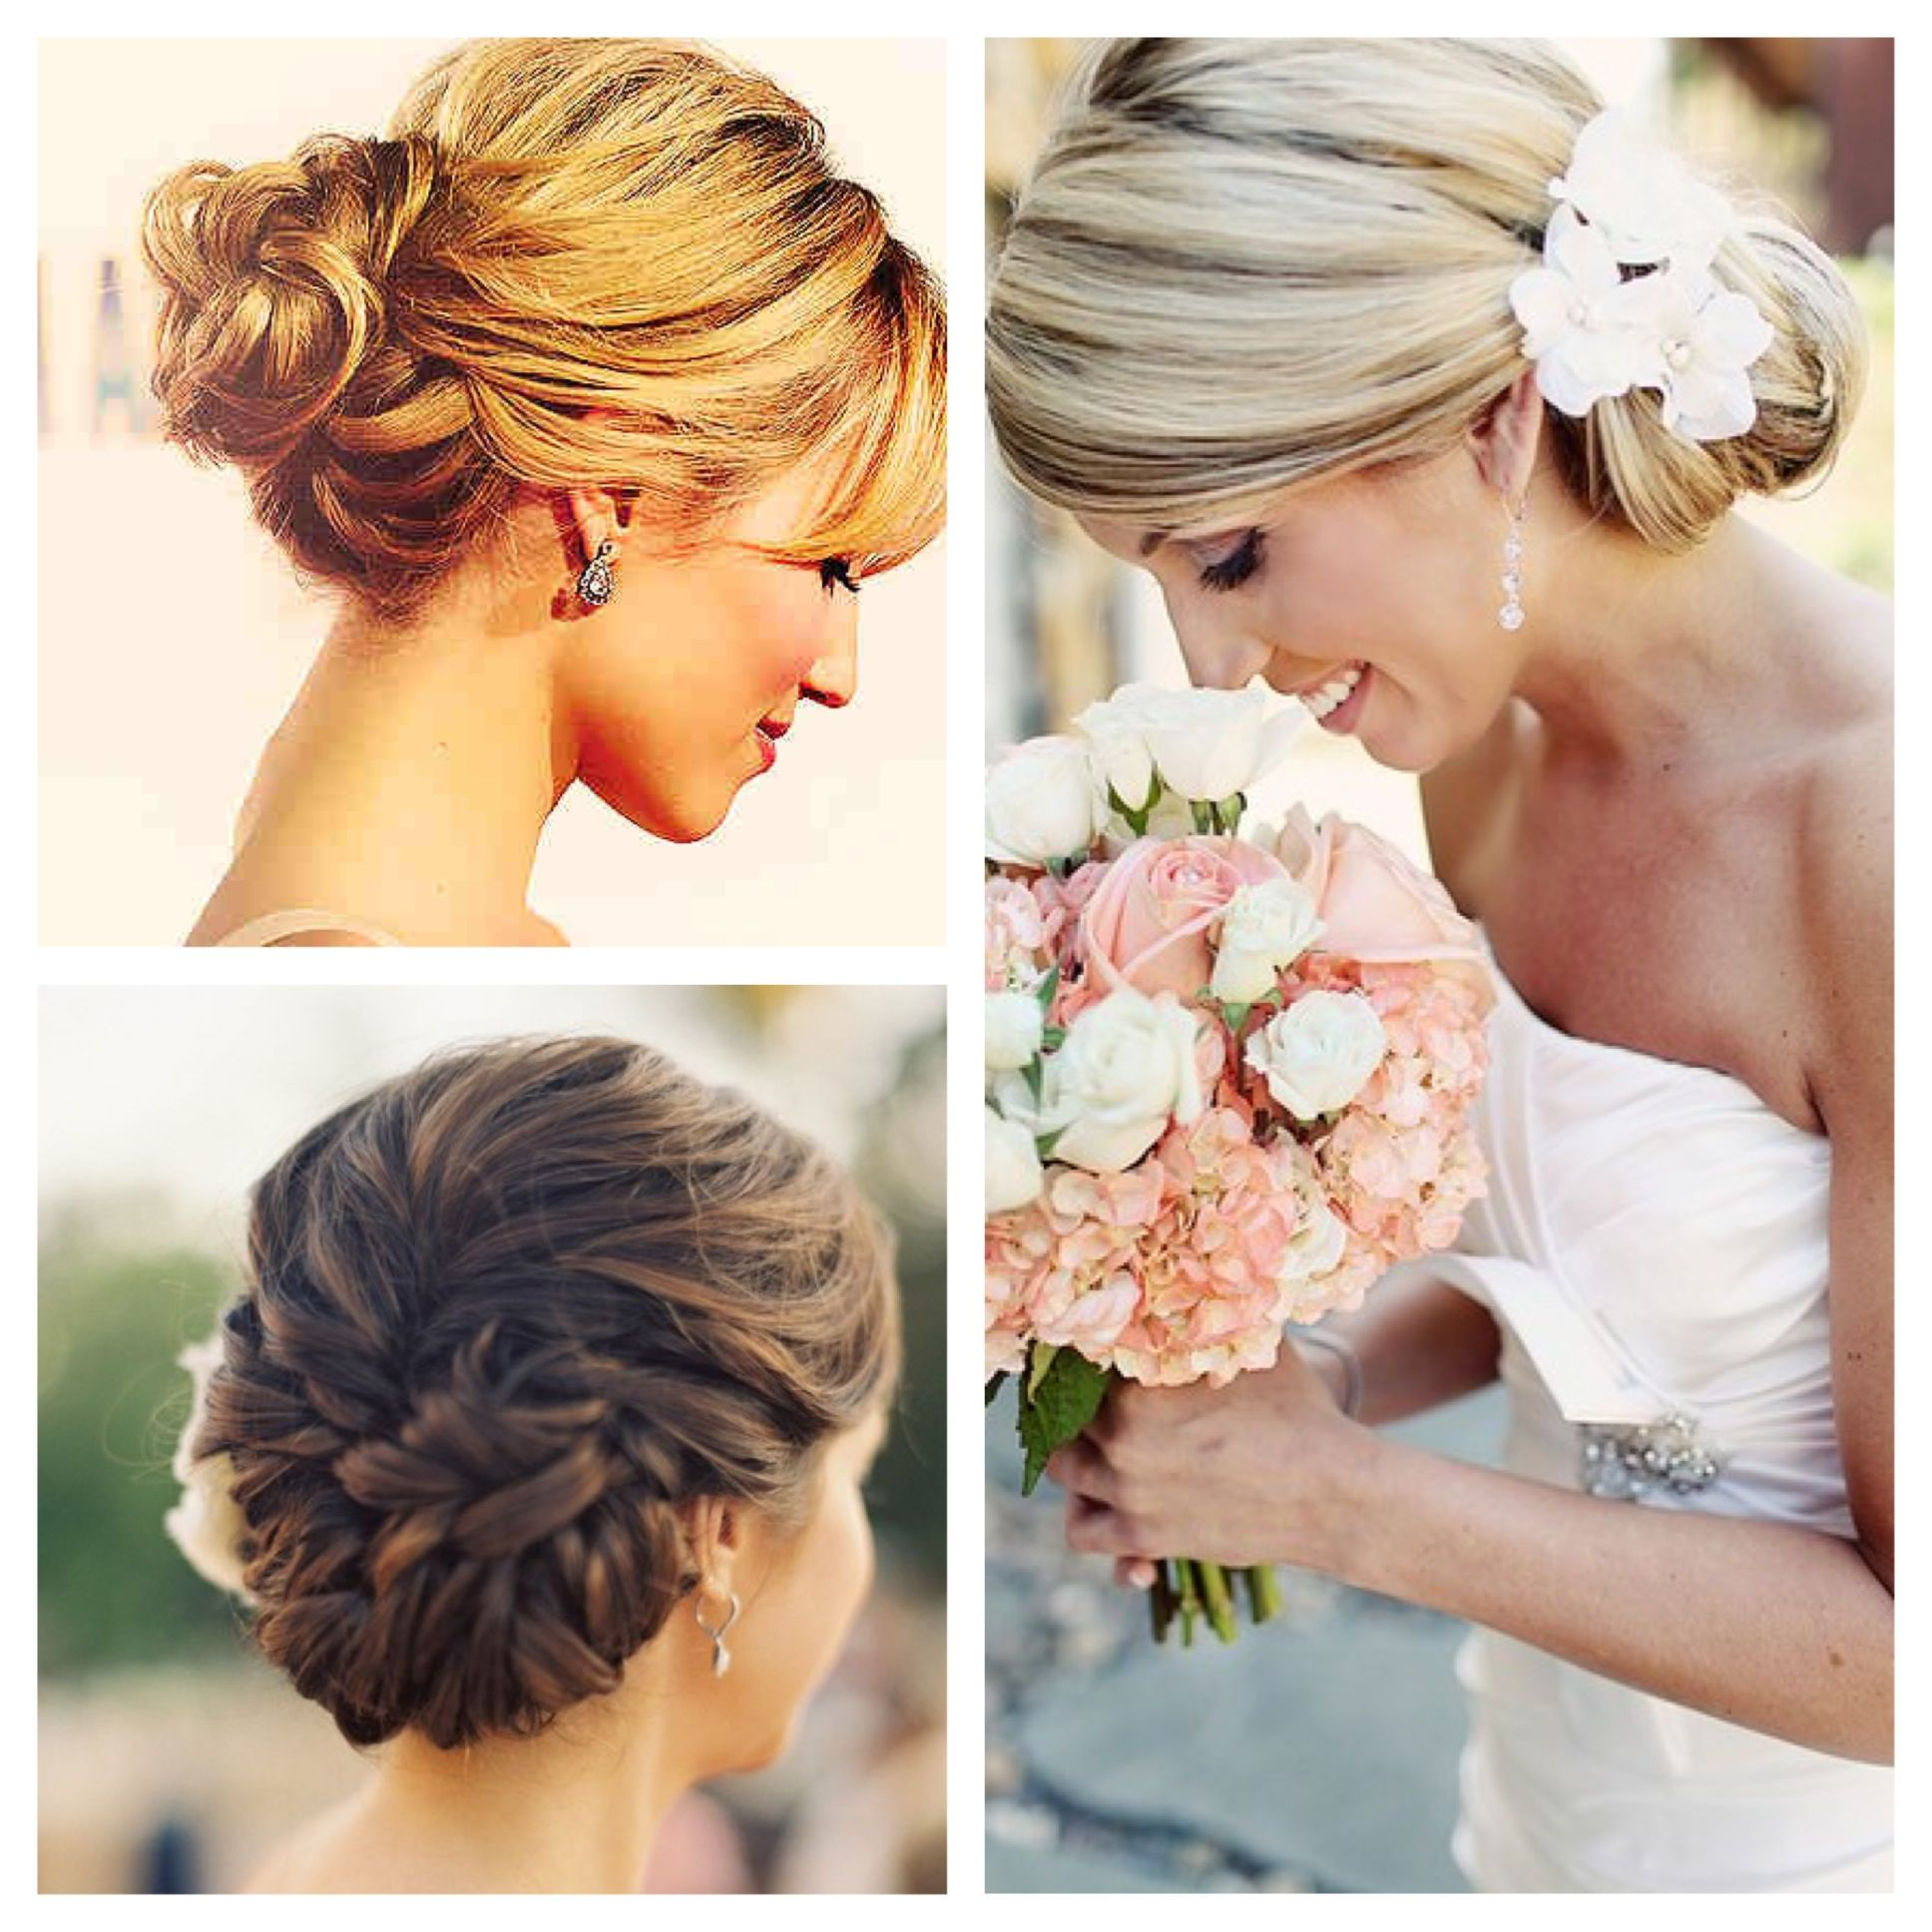 Bridesmaids And Matron Of Honor Hairstyles Flower Girl Hairstyles Bridesmaid Hair Brunette Bridesmaid Hair Side